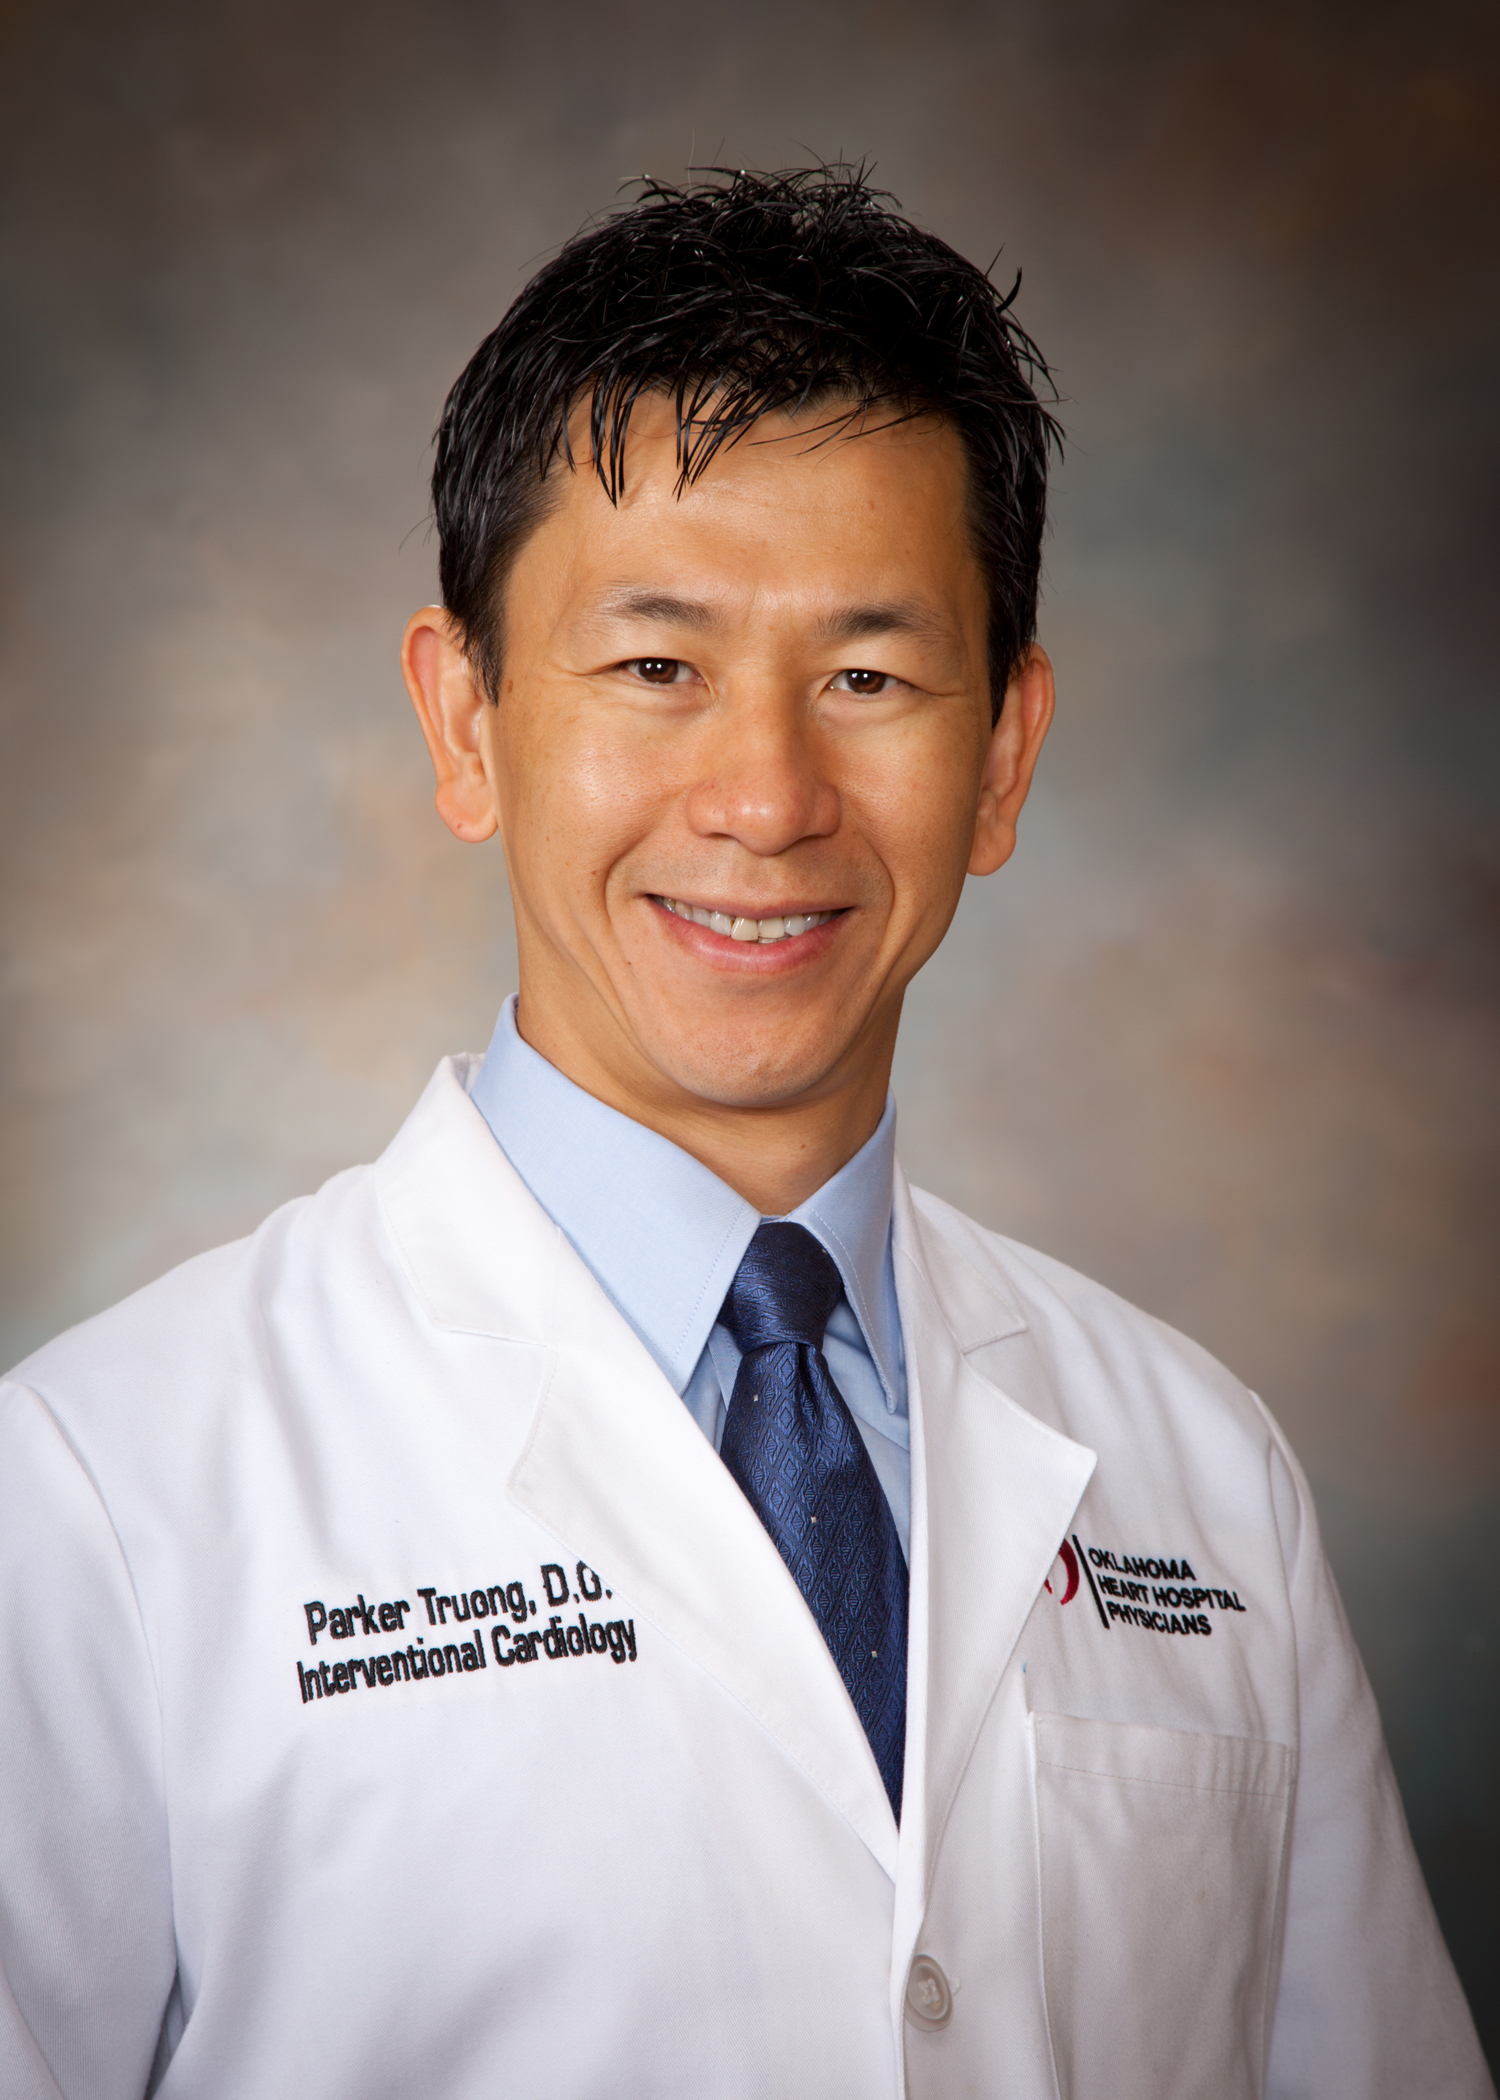 Photo of Parker K. Truong